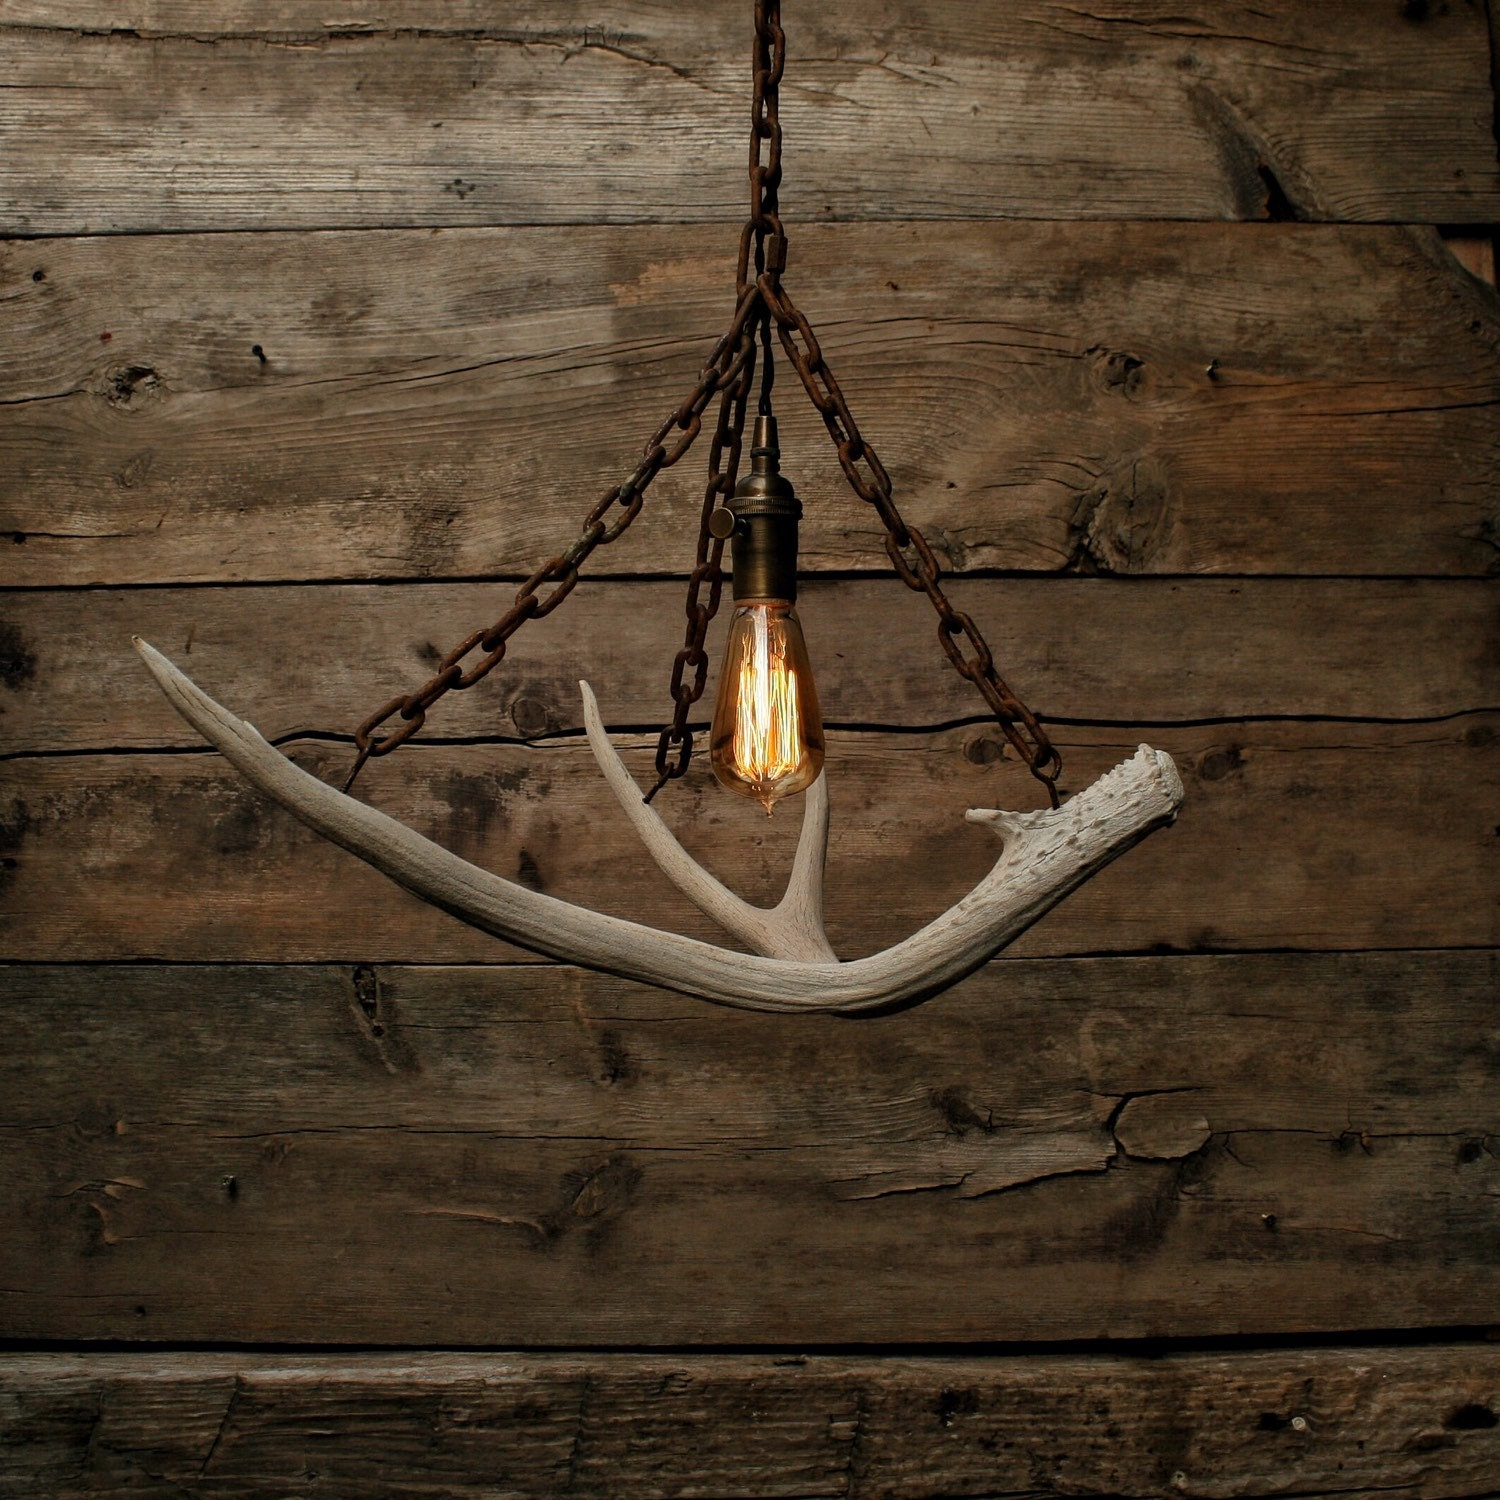 industrial lighting chandelier. Industrial Lighting Chandelier. Click To View Listing Chandelier P